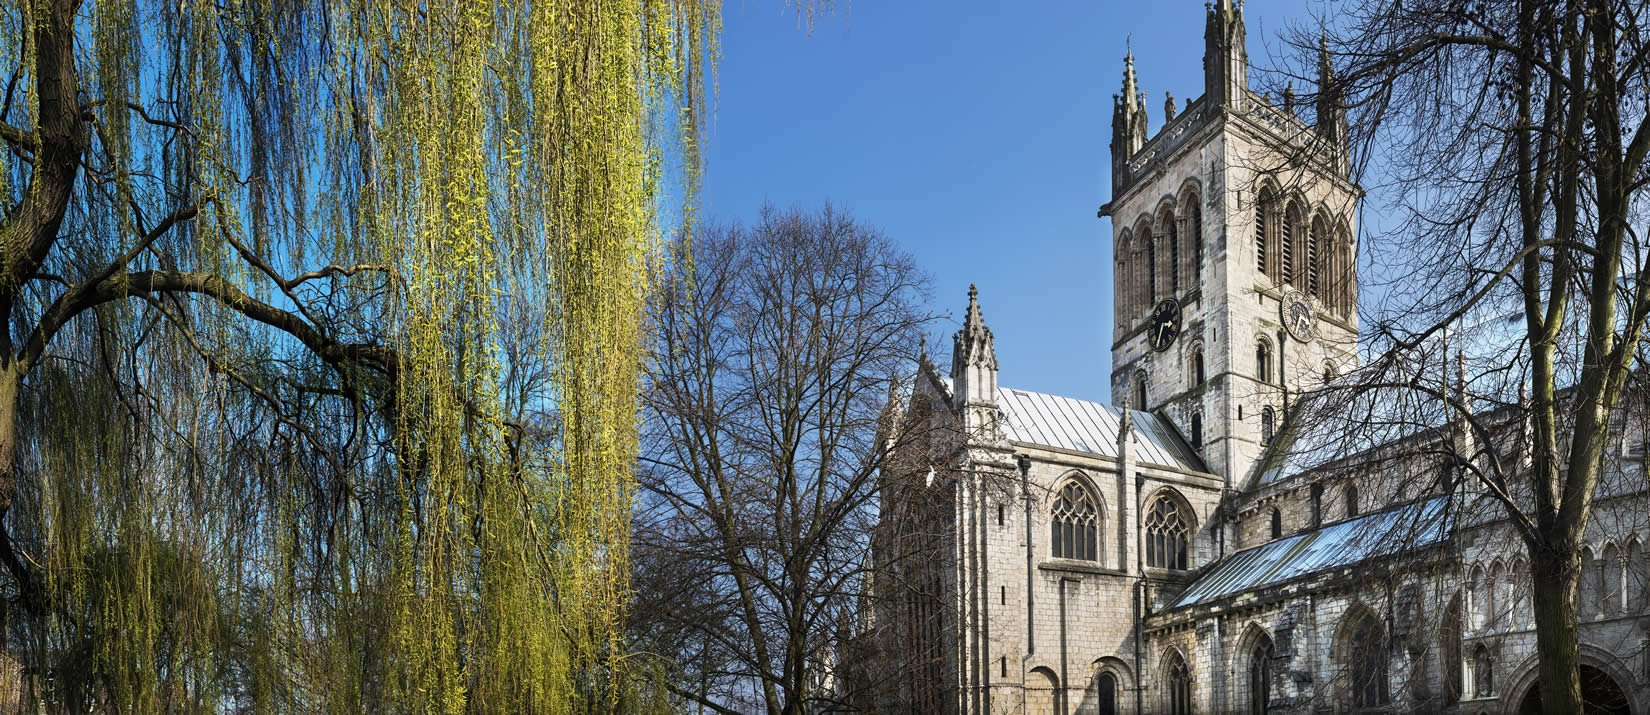 Selby Abbey - Attraction - Selby - North Yorkshire